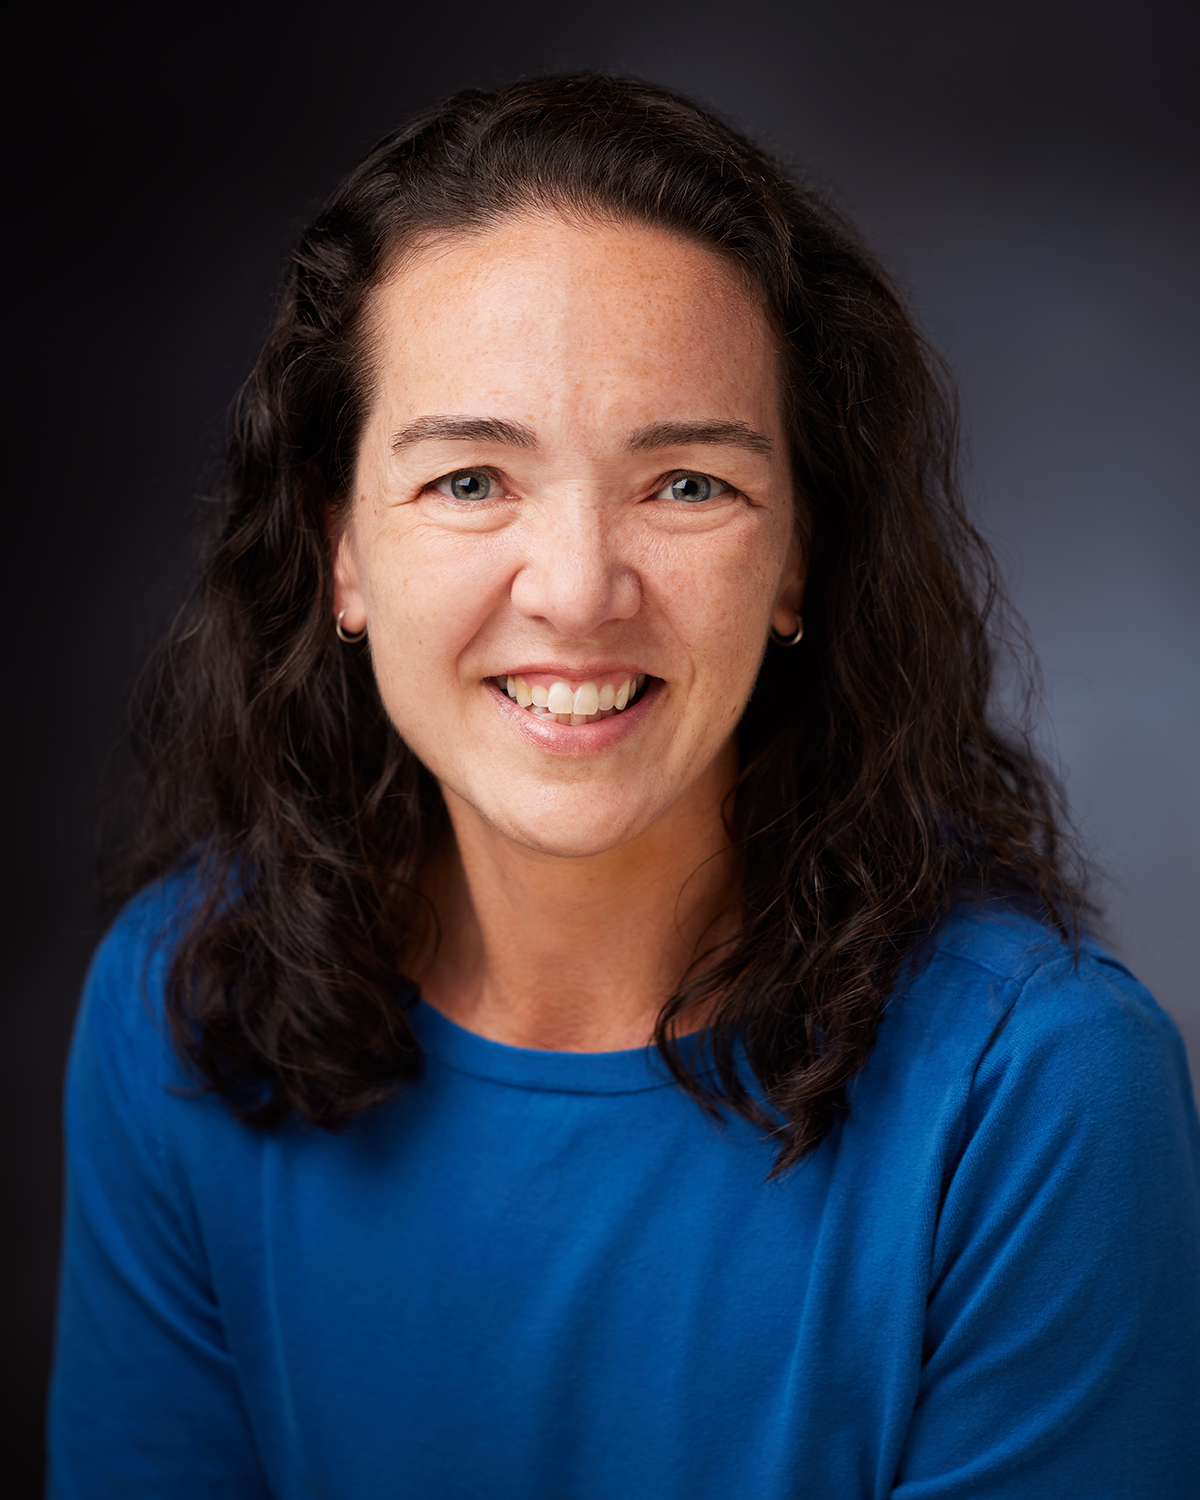 Brandi Vasquez, MD, PhD - Physician and Surgeon in Oregon City, OR